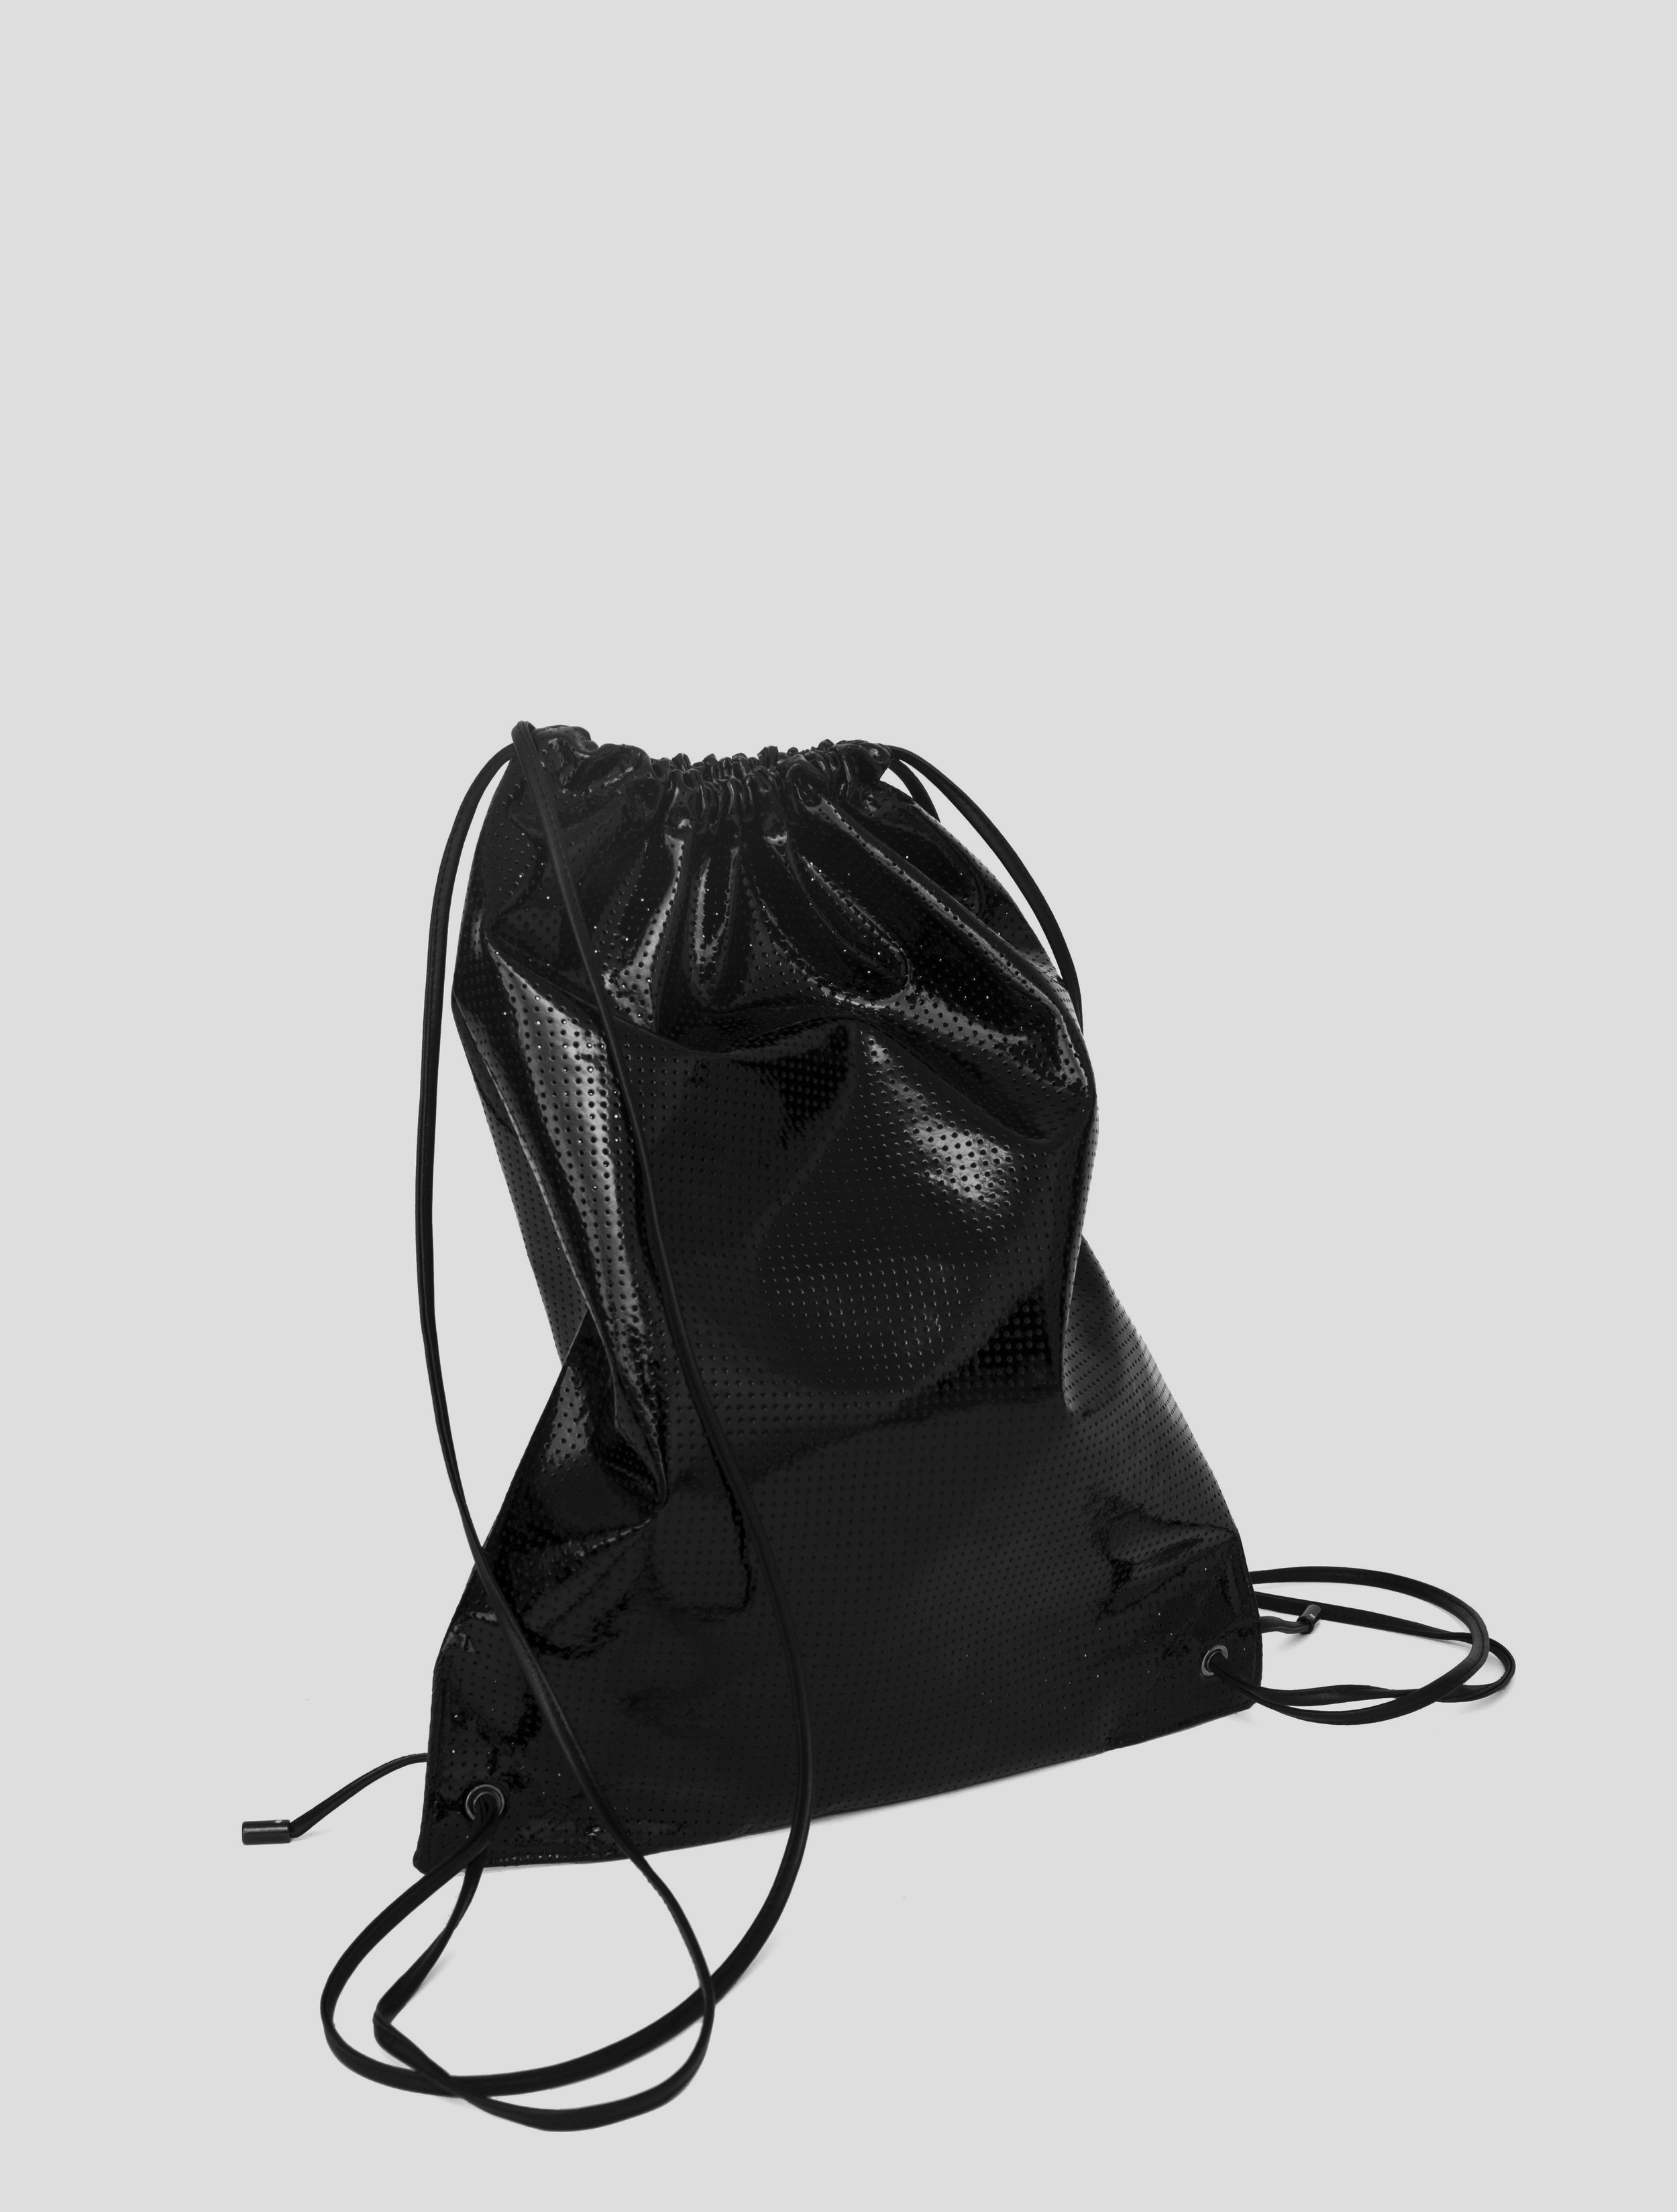 DRAWSTRING BLACK PERFORATED BACK.jpg